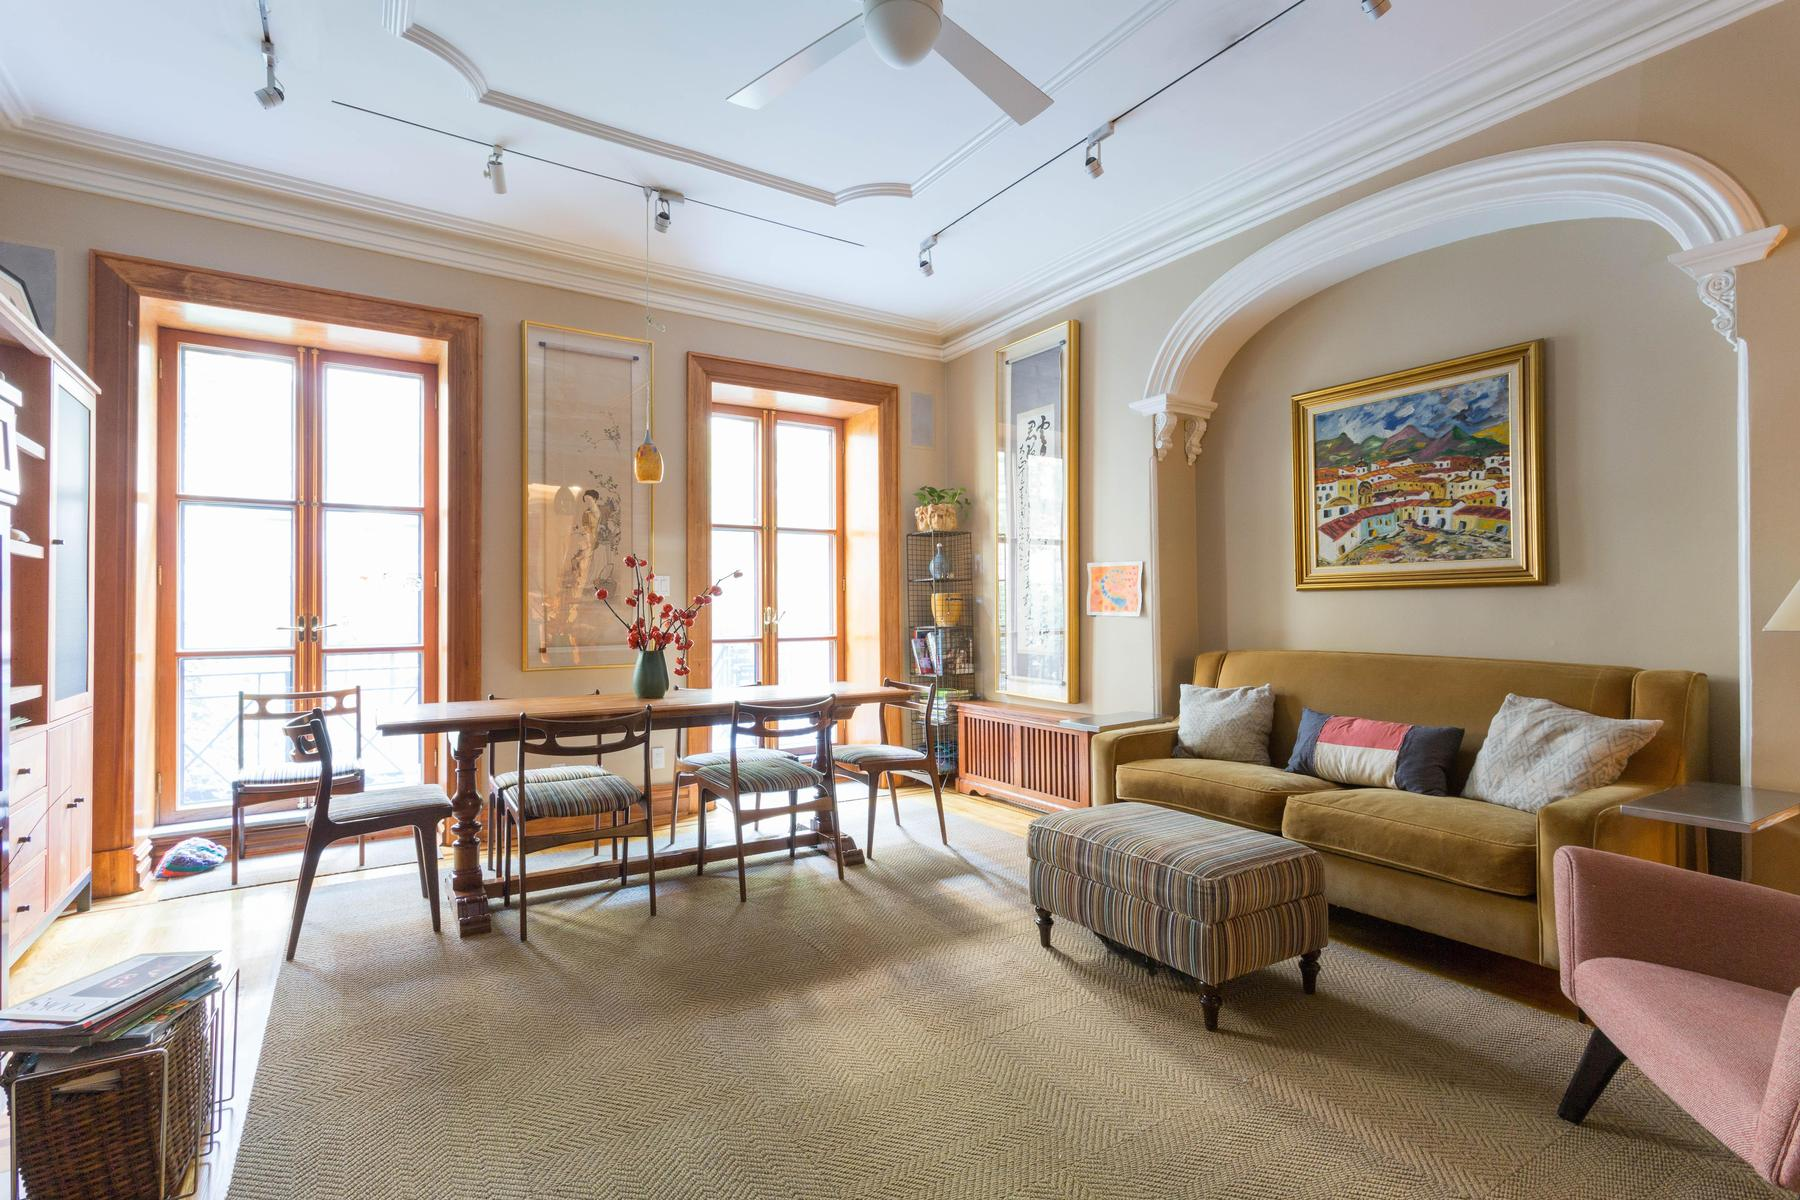 New York - West 22nd Townhouse